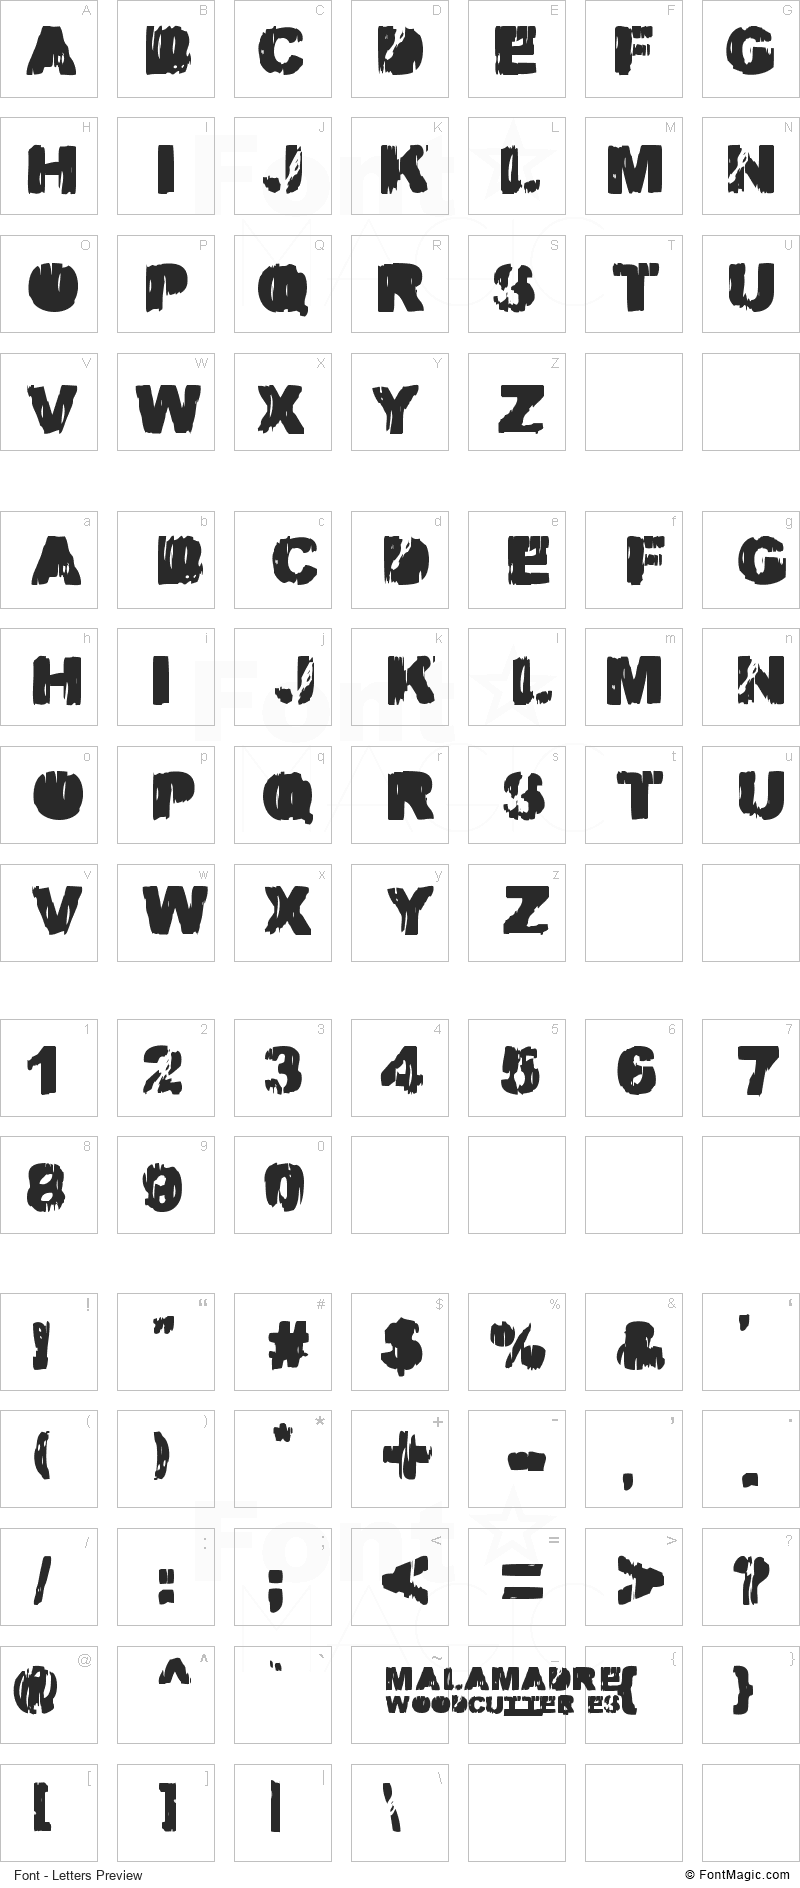 Malamadre Font - All Latters Preview Chart